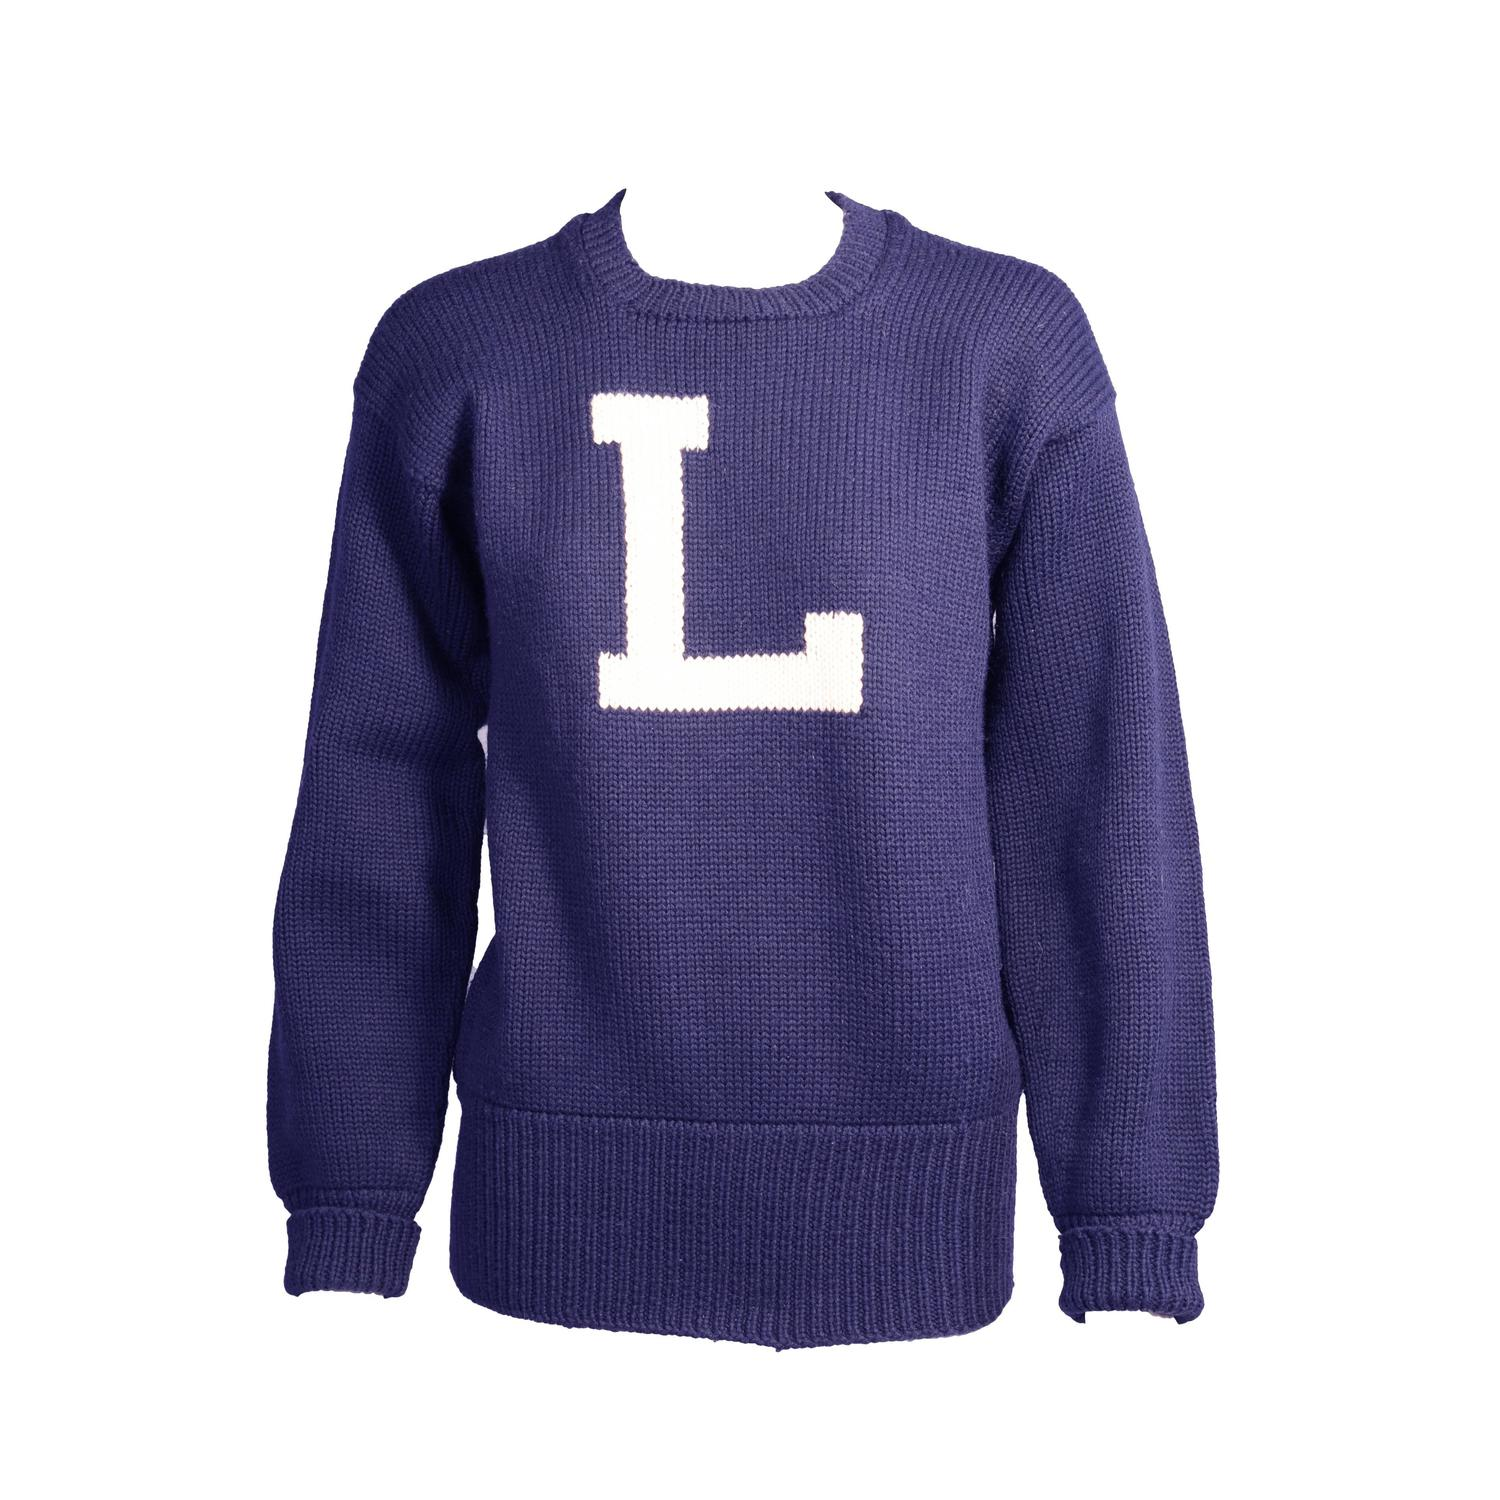 Yes letter sweaters are for girls too and you'll feel warm, feminine and graceful in a letter sweater from Art Knitting Mills. Choose a cardigan or pull-over style sweater. Both are perfect to show off high school athletic and music awards.